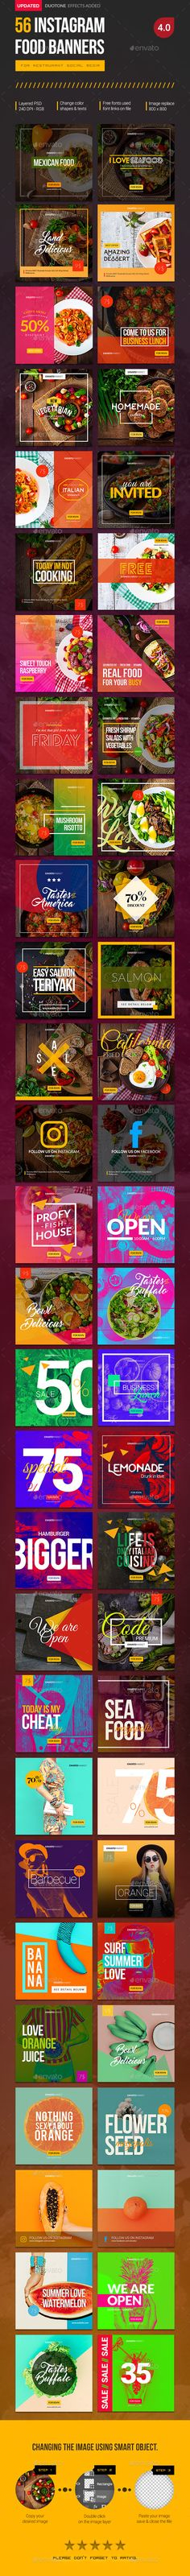 56 Instagram Food Banners - Social Media Web Elements